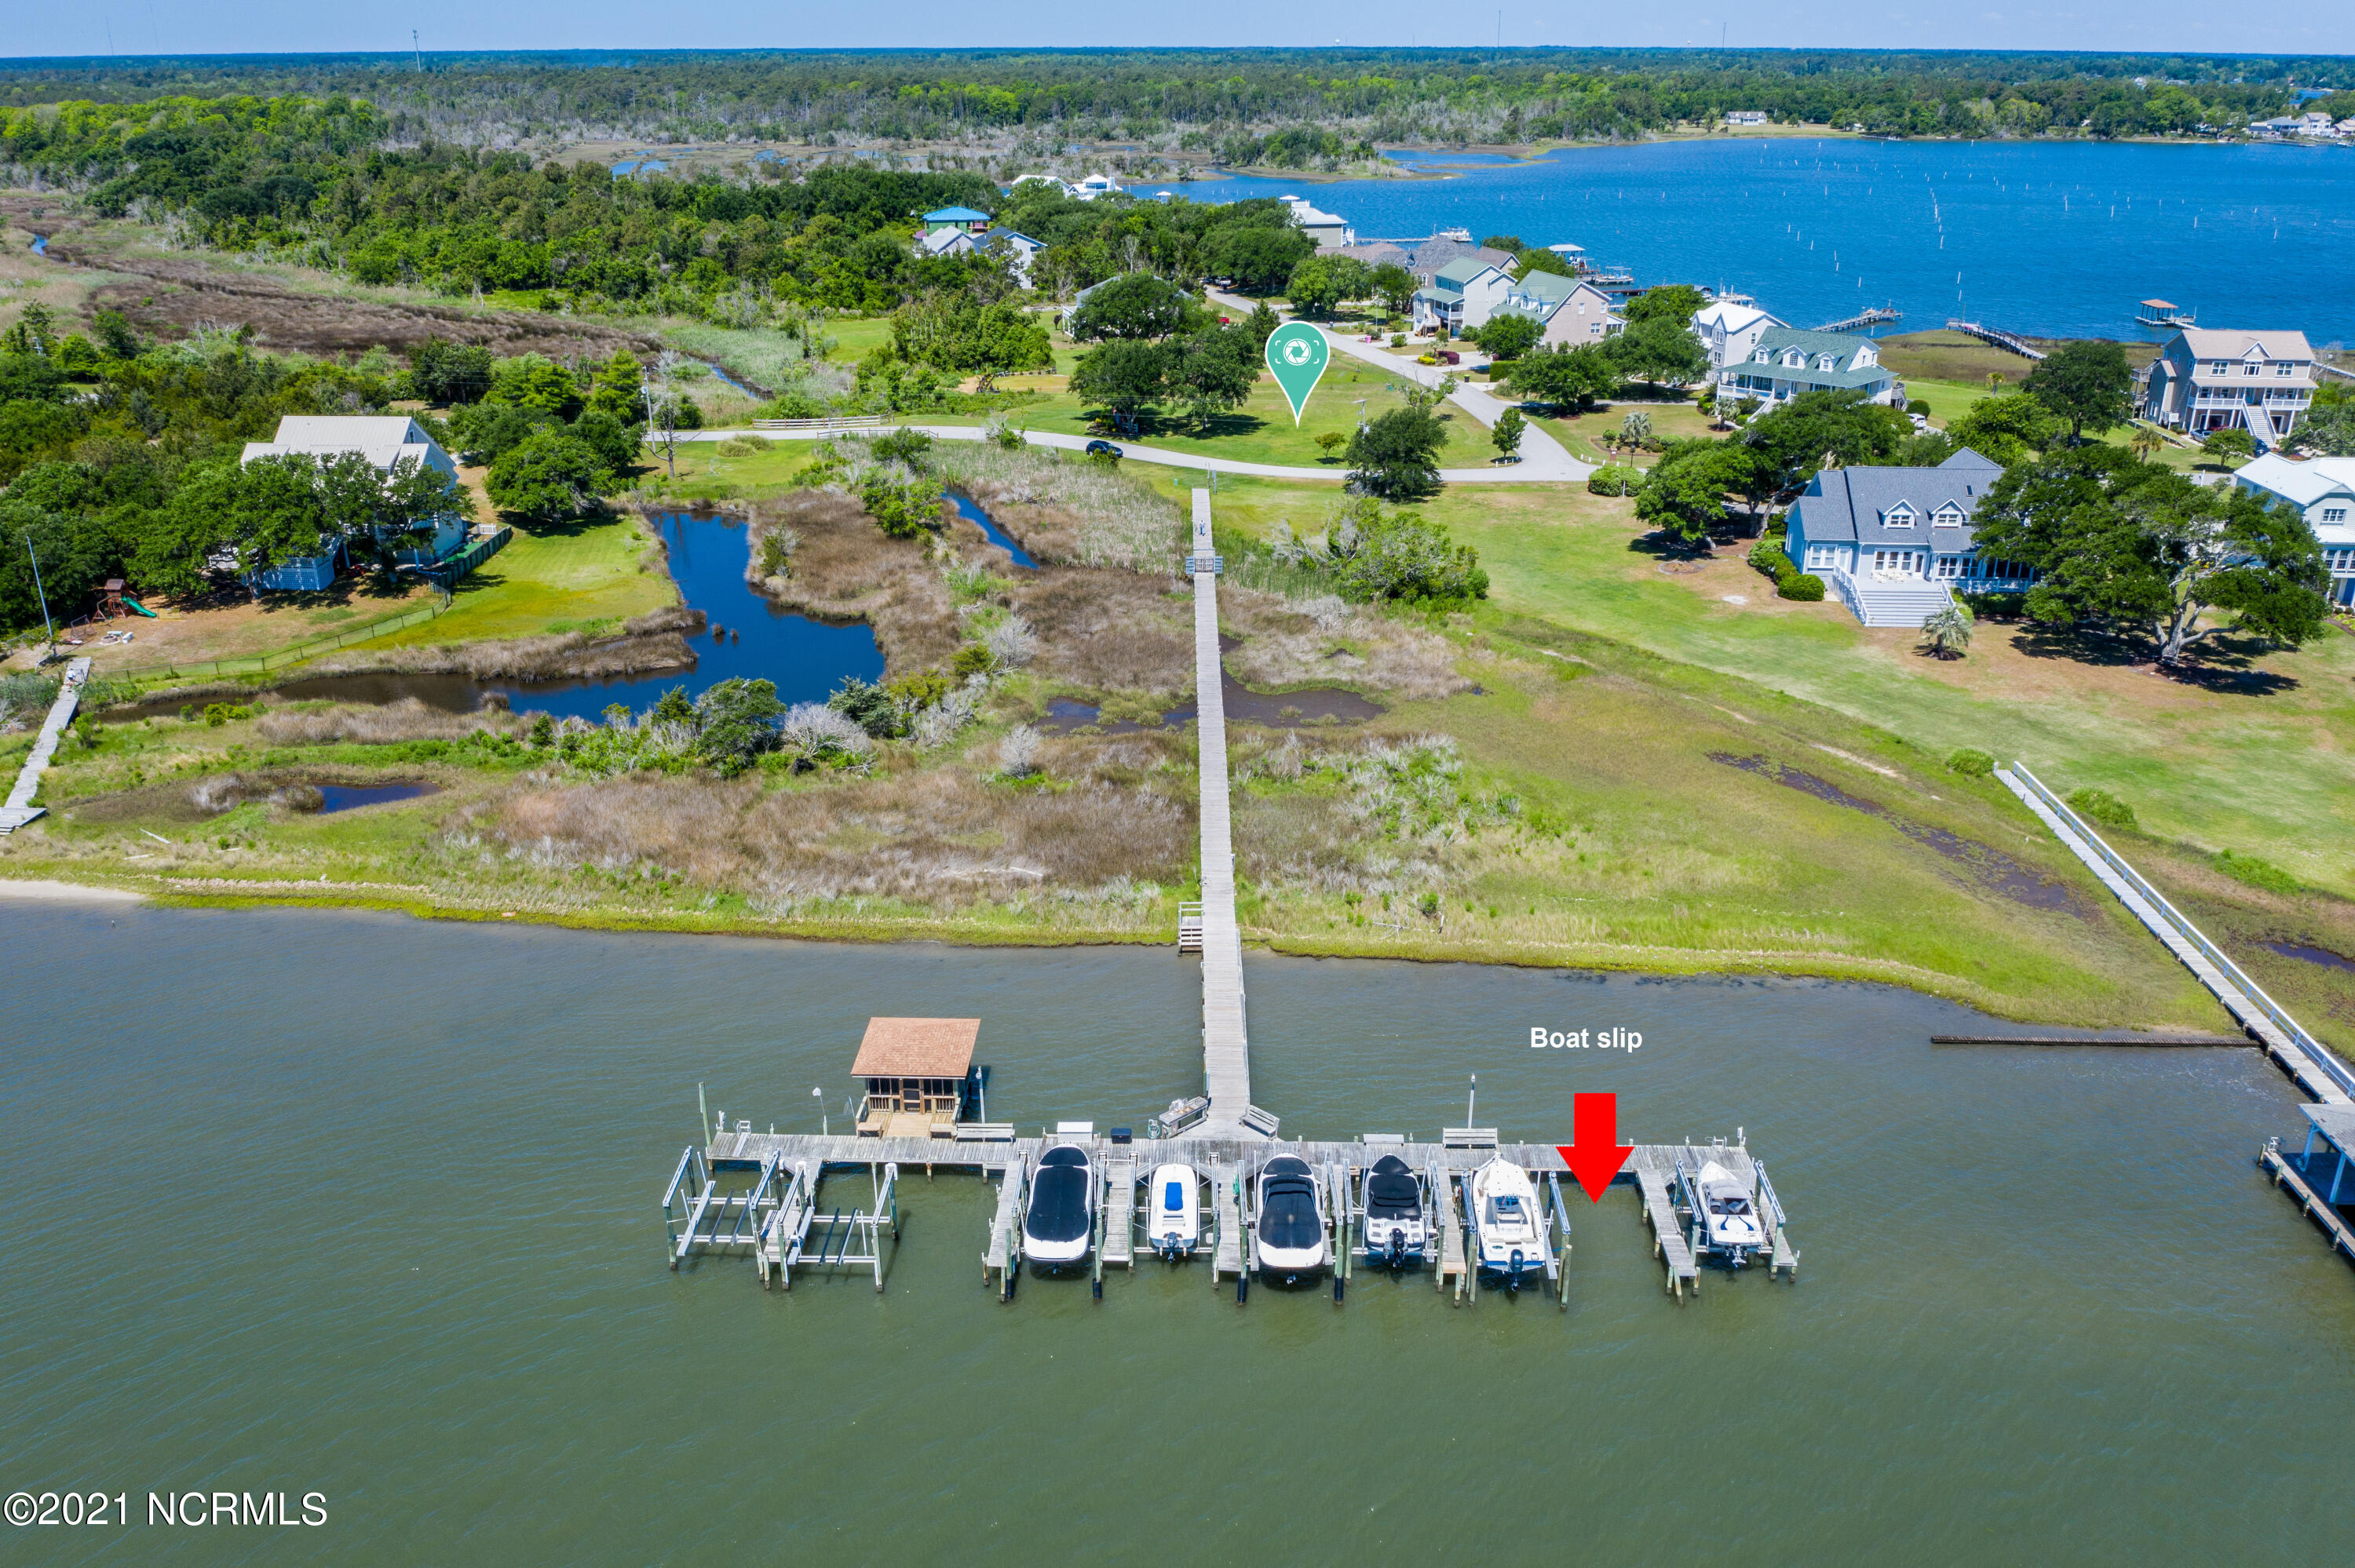 Are you ready for summer boating? This lot comes with a Deep Water Boat Slip on the Intracoastal Waterway! Build your dream home on this lot with a view of the ICW in the prestigious coastal community of Pelican Point.  This is a gorgeous corner lot with no city taxes to worry about. If you are not quite ready to build that's ok, park your boat and enjoy your boat slip while you plan for your future coastal oasis.  This unique opportunity won't last - check it out today.